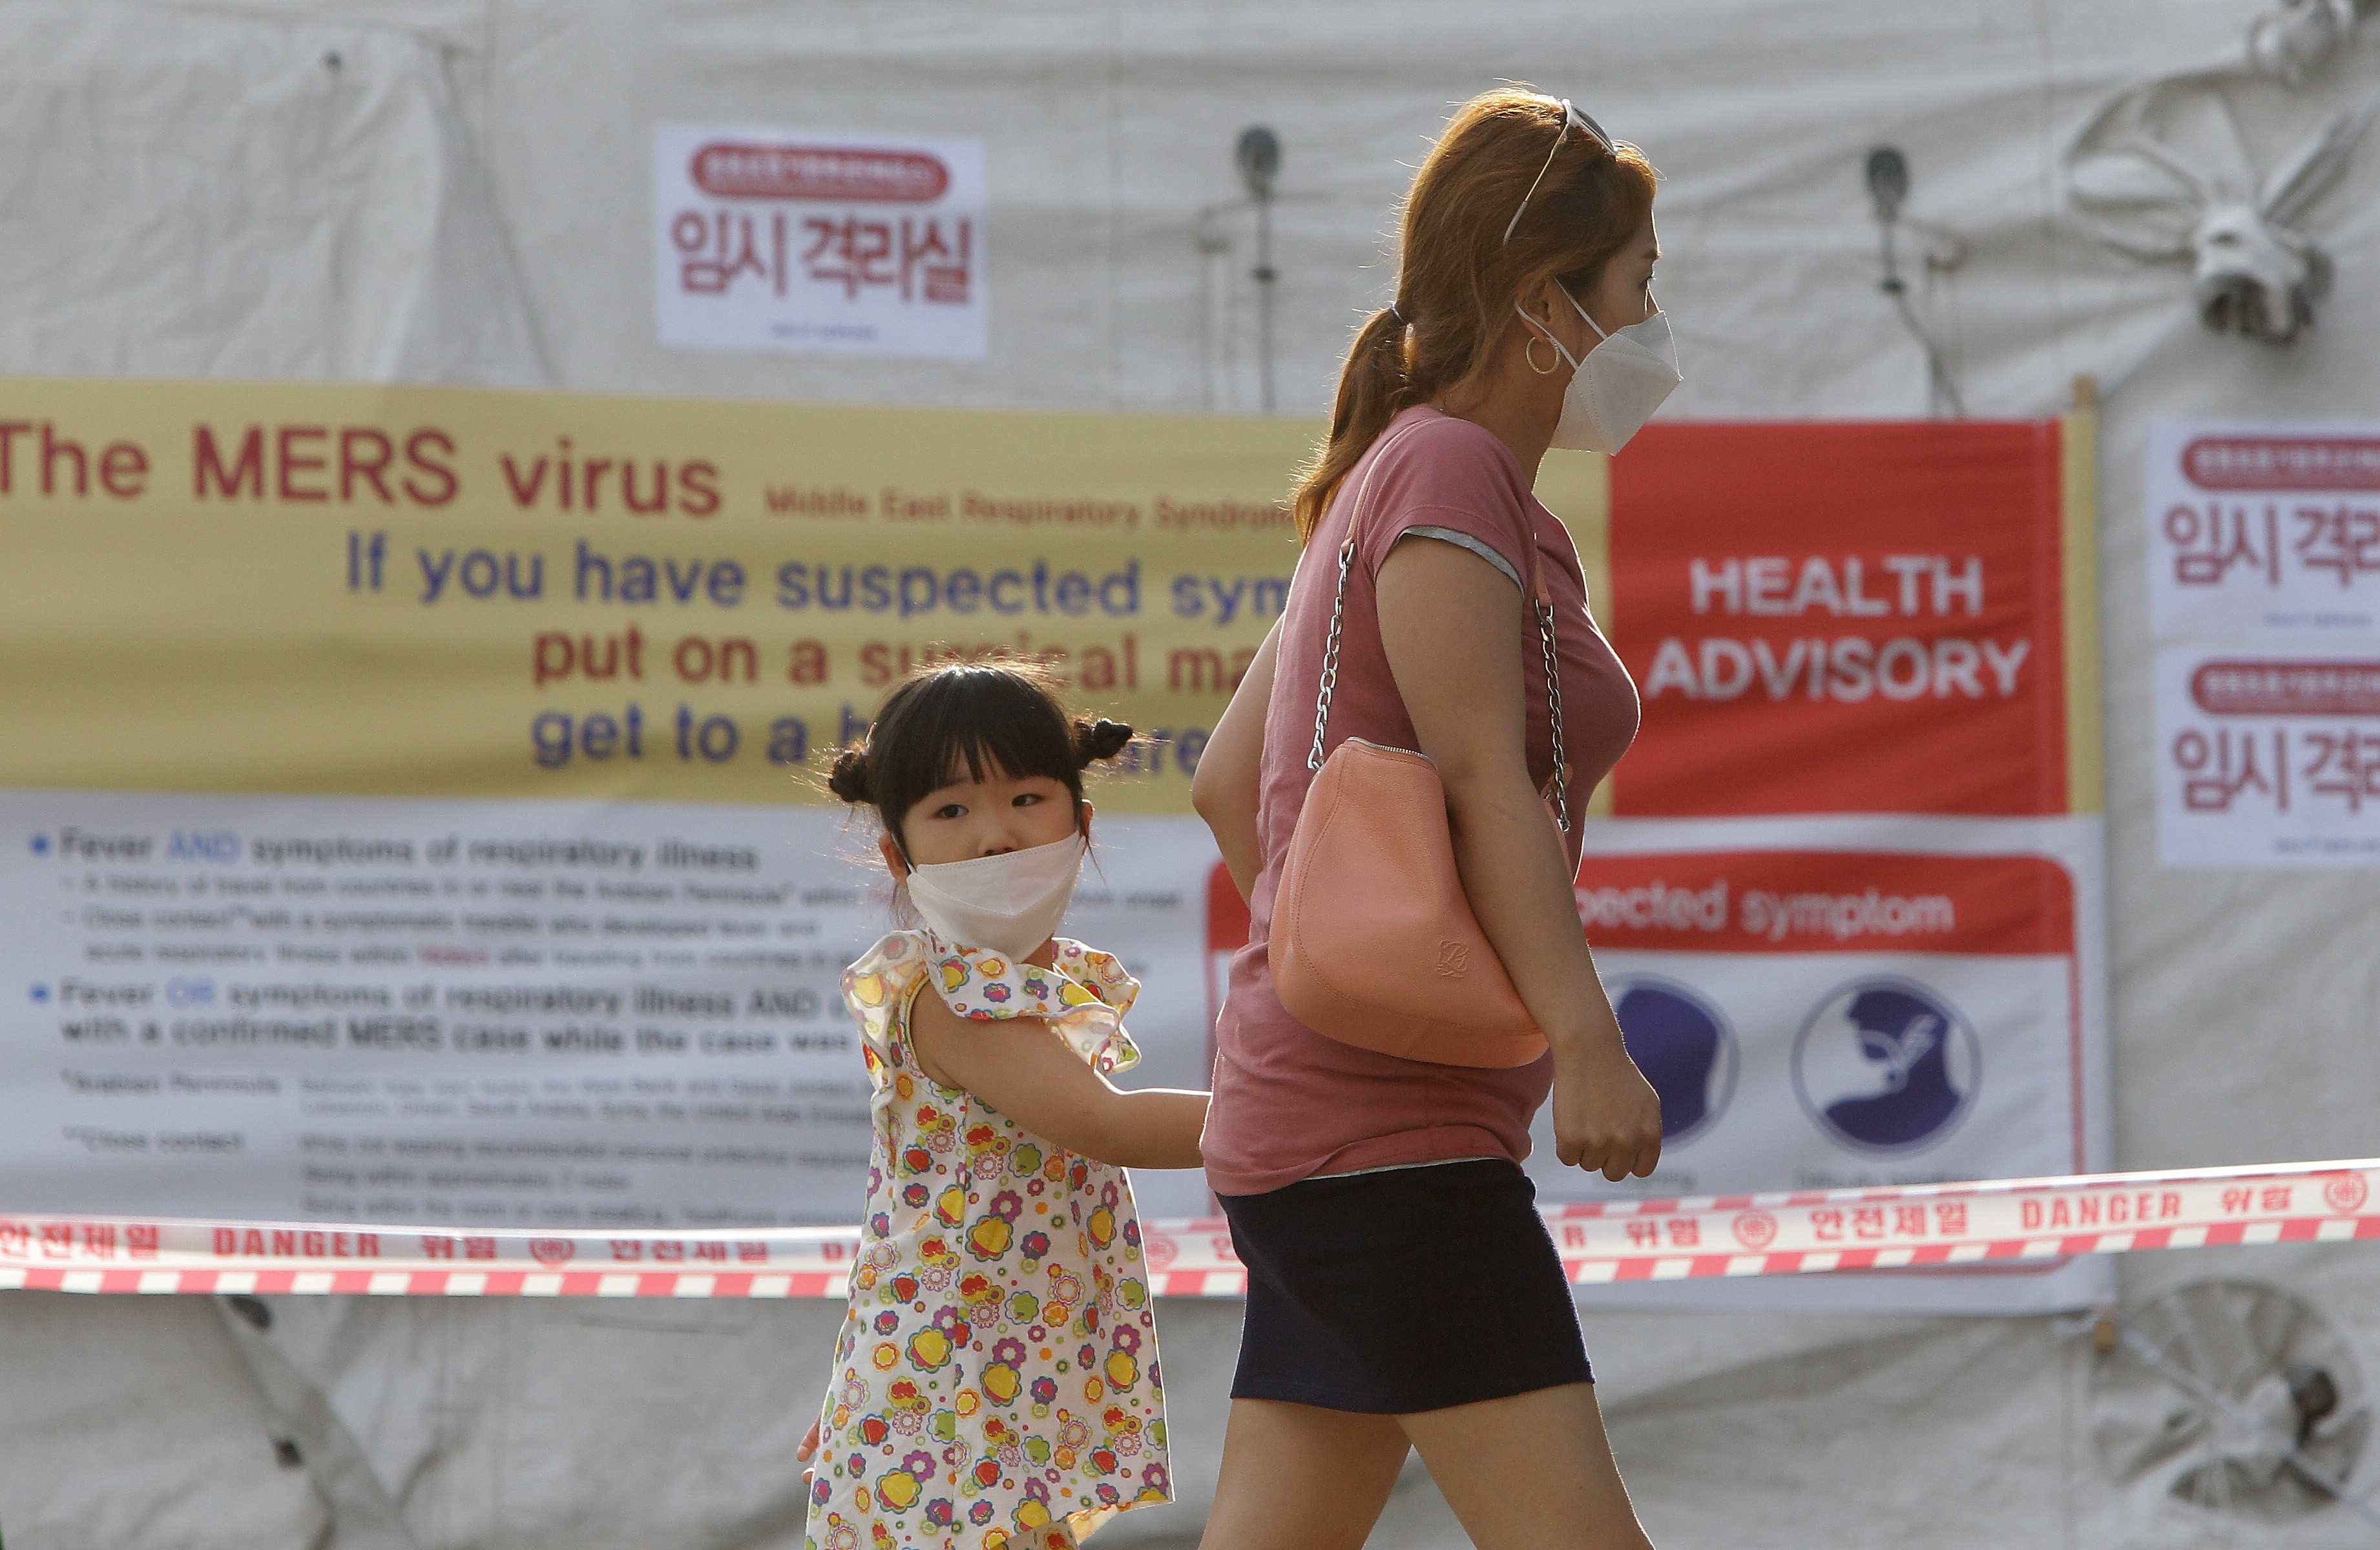 Visitors wearing masks walk in front of a health advisory sign about the MERS virus at a quarantine tent for people who could be infected with the MERS virus at Seoul National University Hospital on June 2 in Seoul, South Korea.